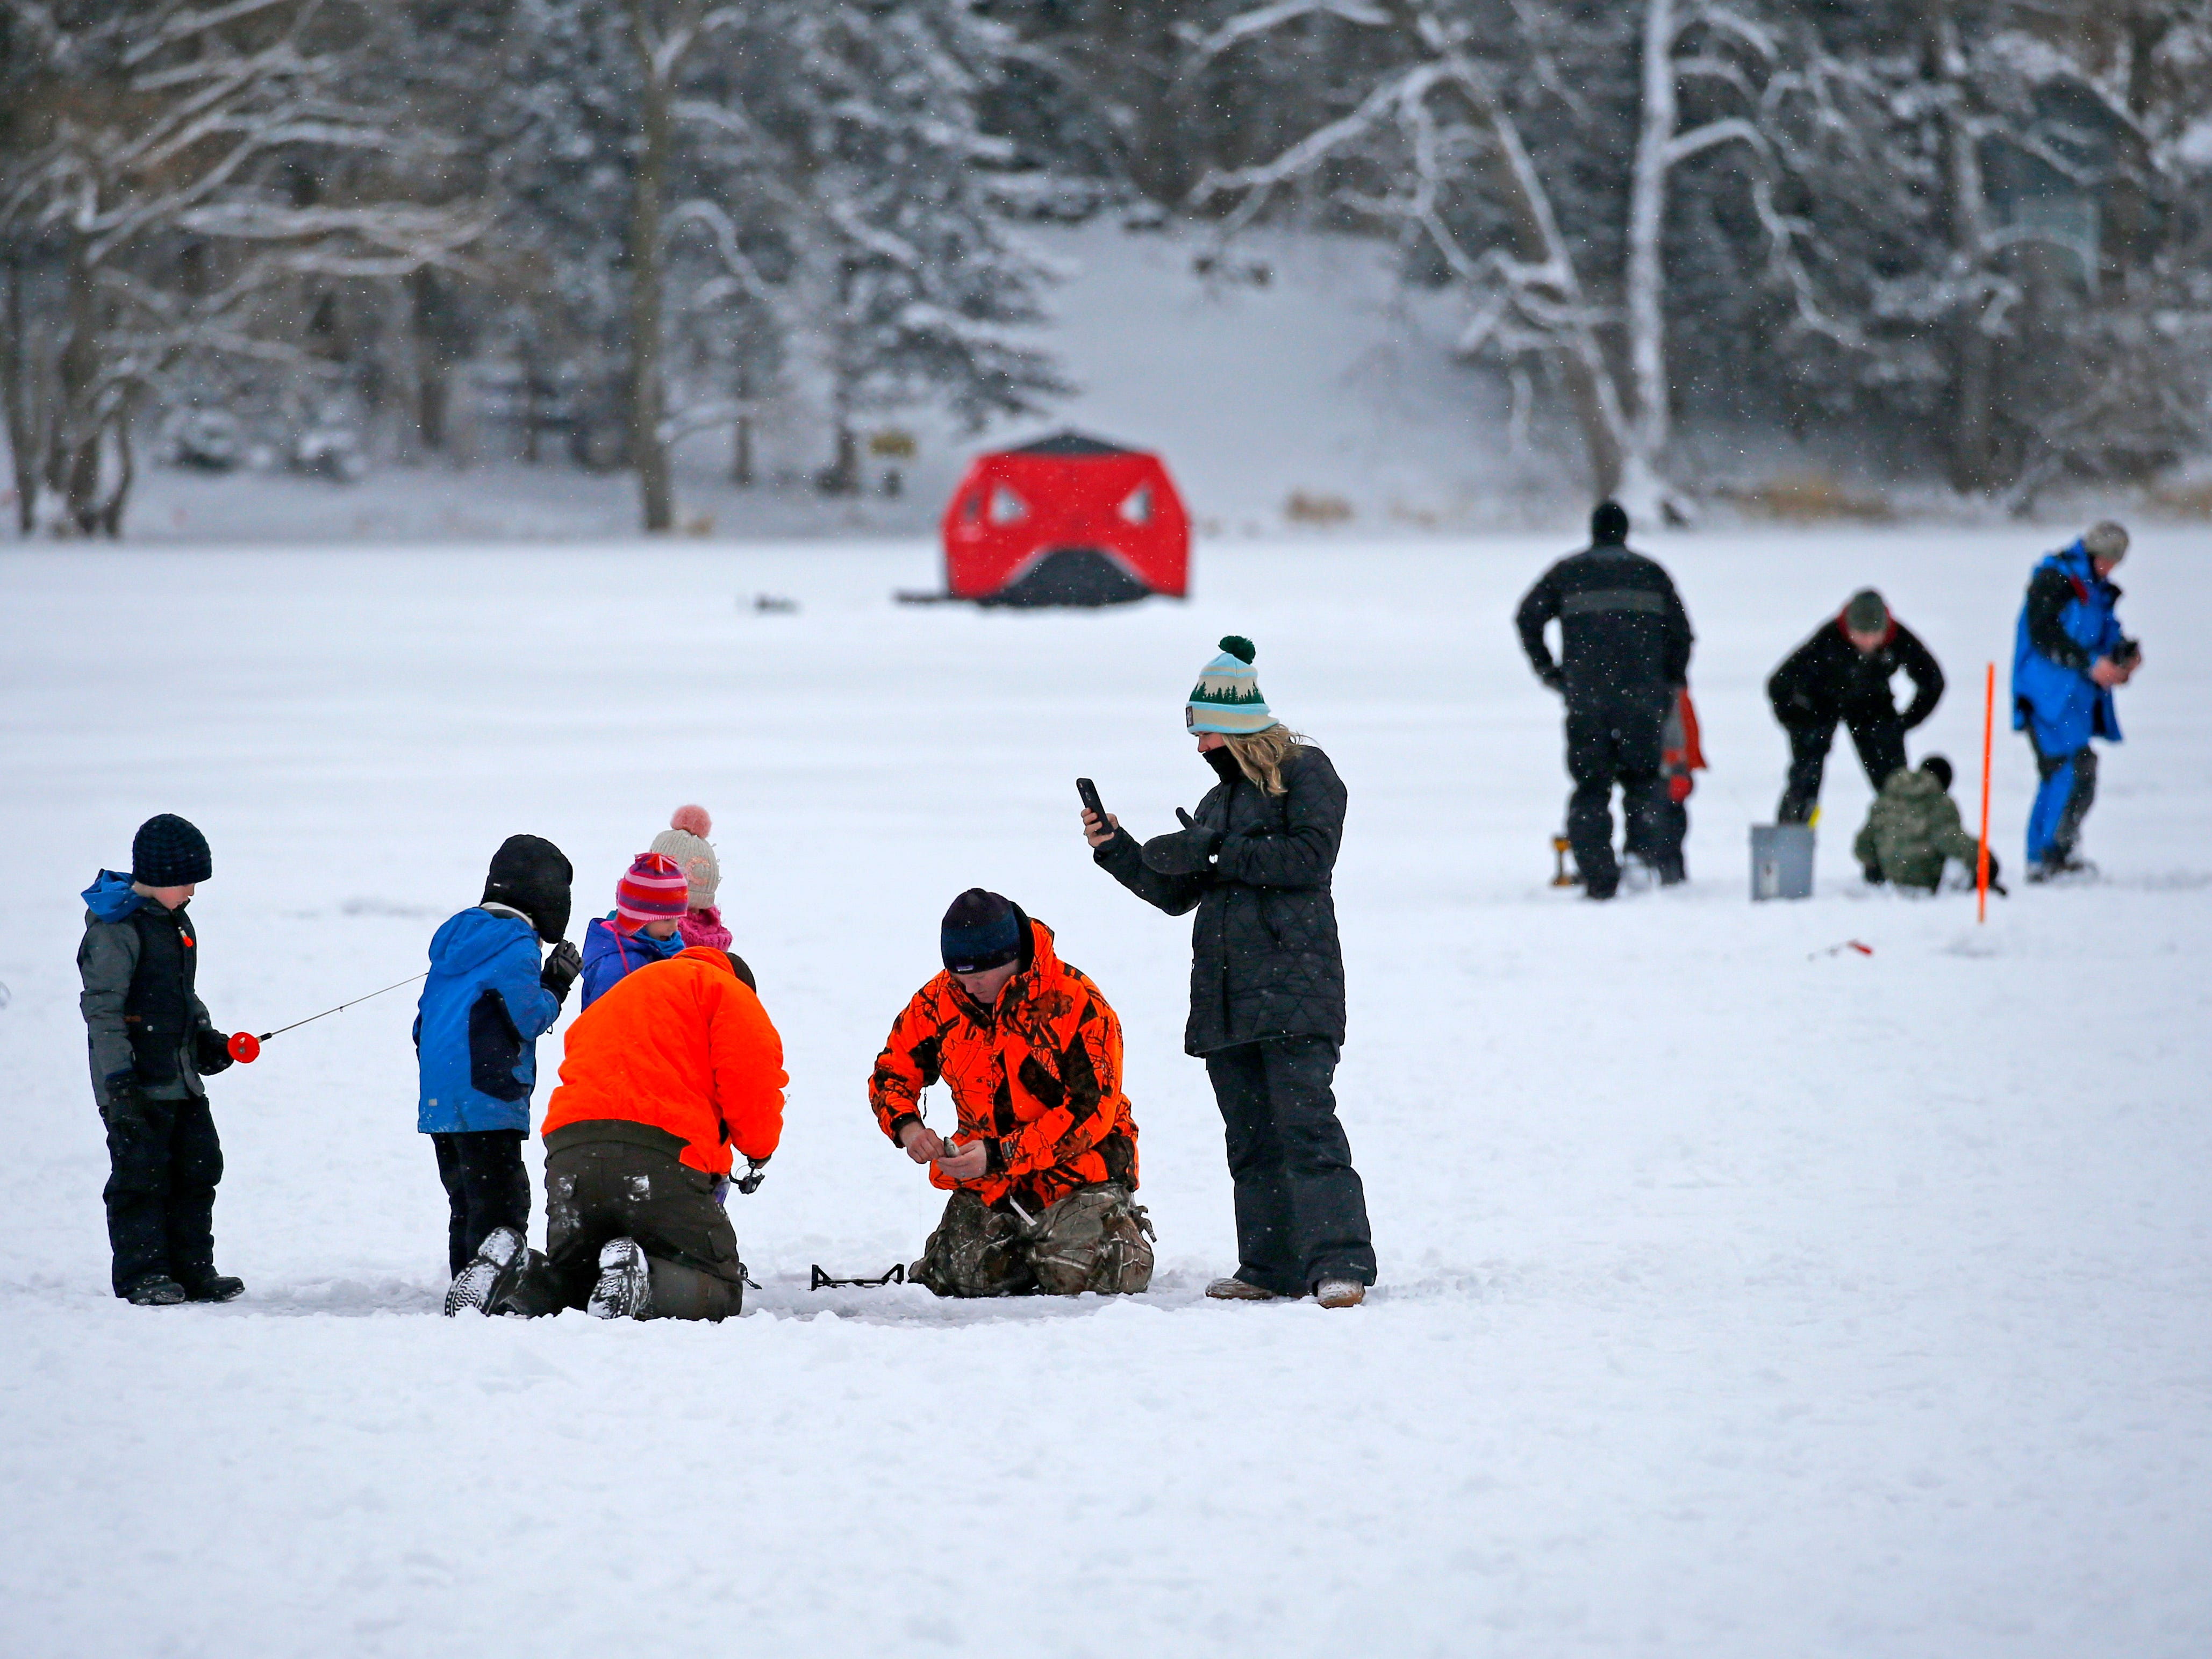 Families try ice fishing on Lower Genesee Lake in Summit during a free instructional ice fishing day hosted by Sons of the Watertown American Legion Post 189 on Jan. 19. The event drew more than 50 children and their attending adults.